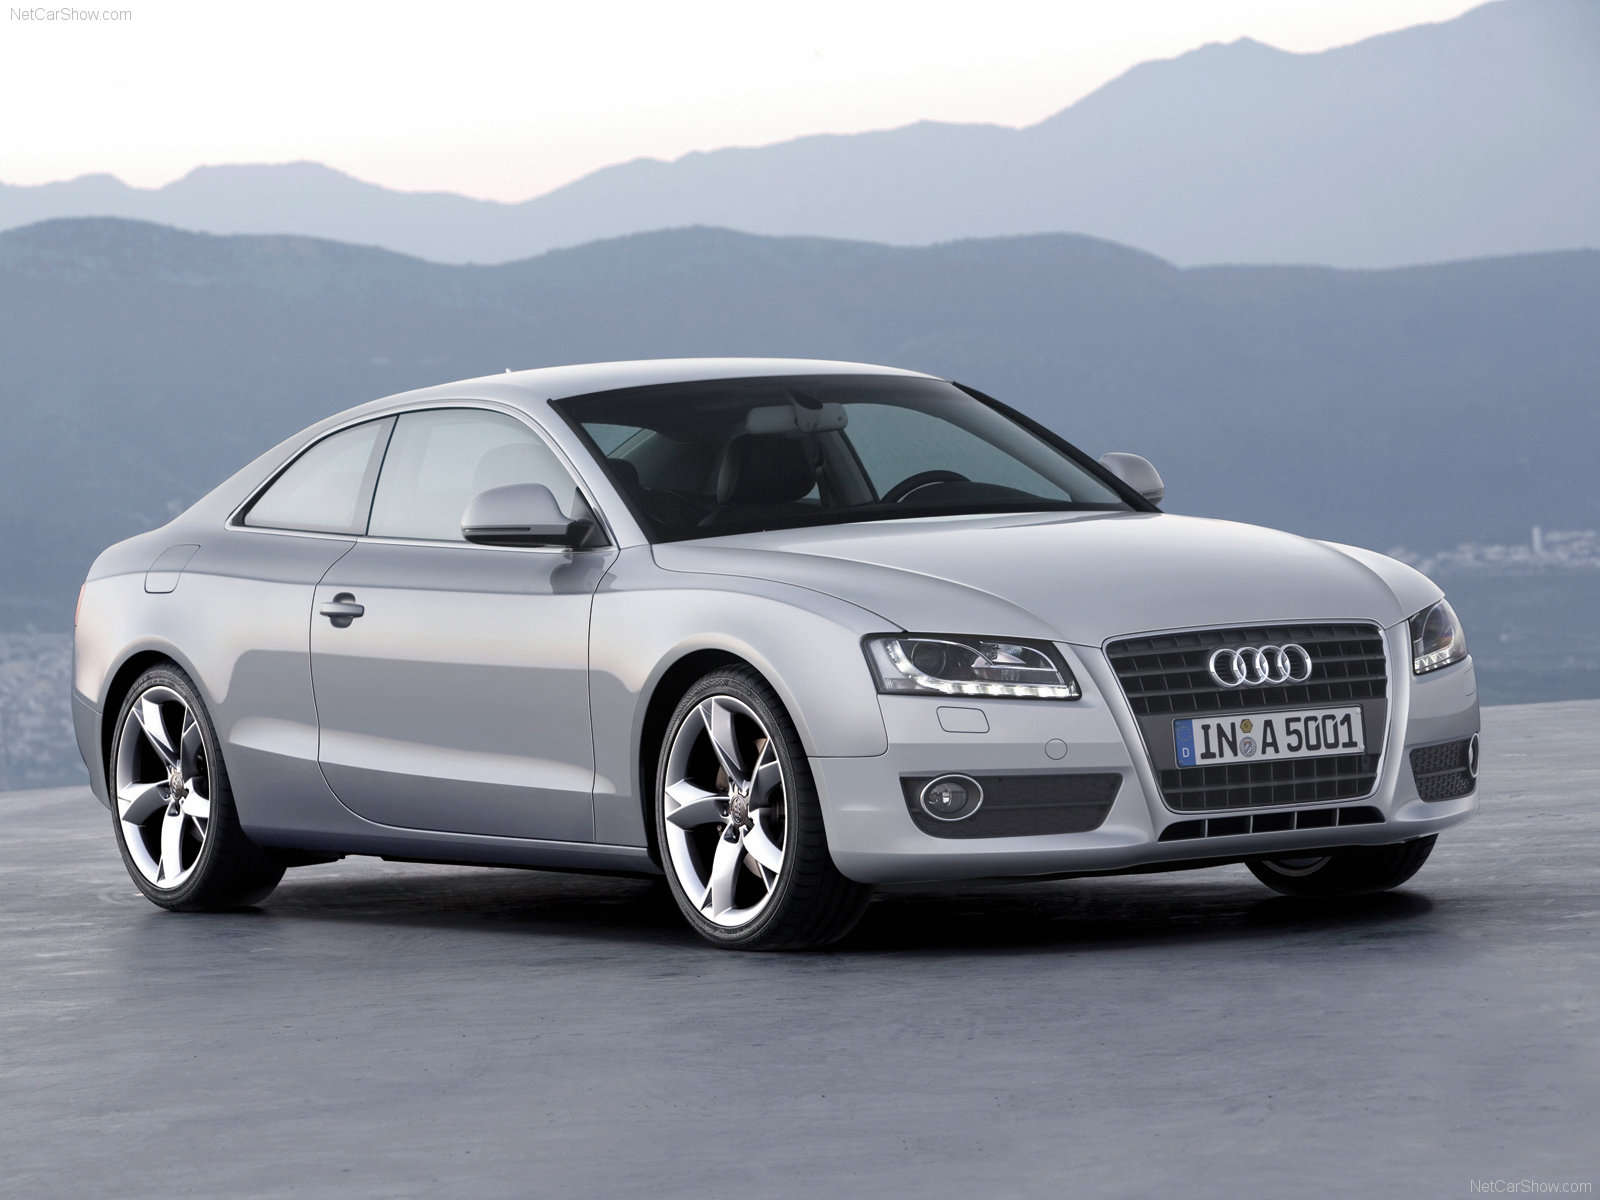 http://www.carsbase.com/photo/Audi-A5_mp4_pic_42028.jpg